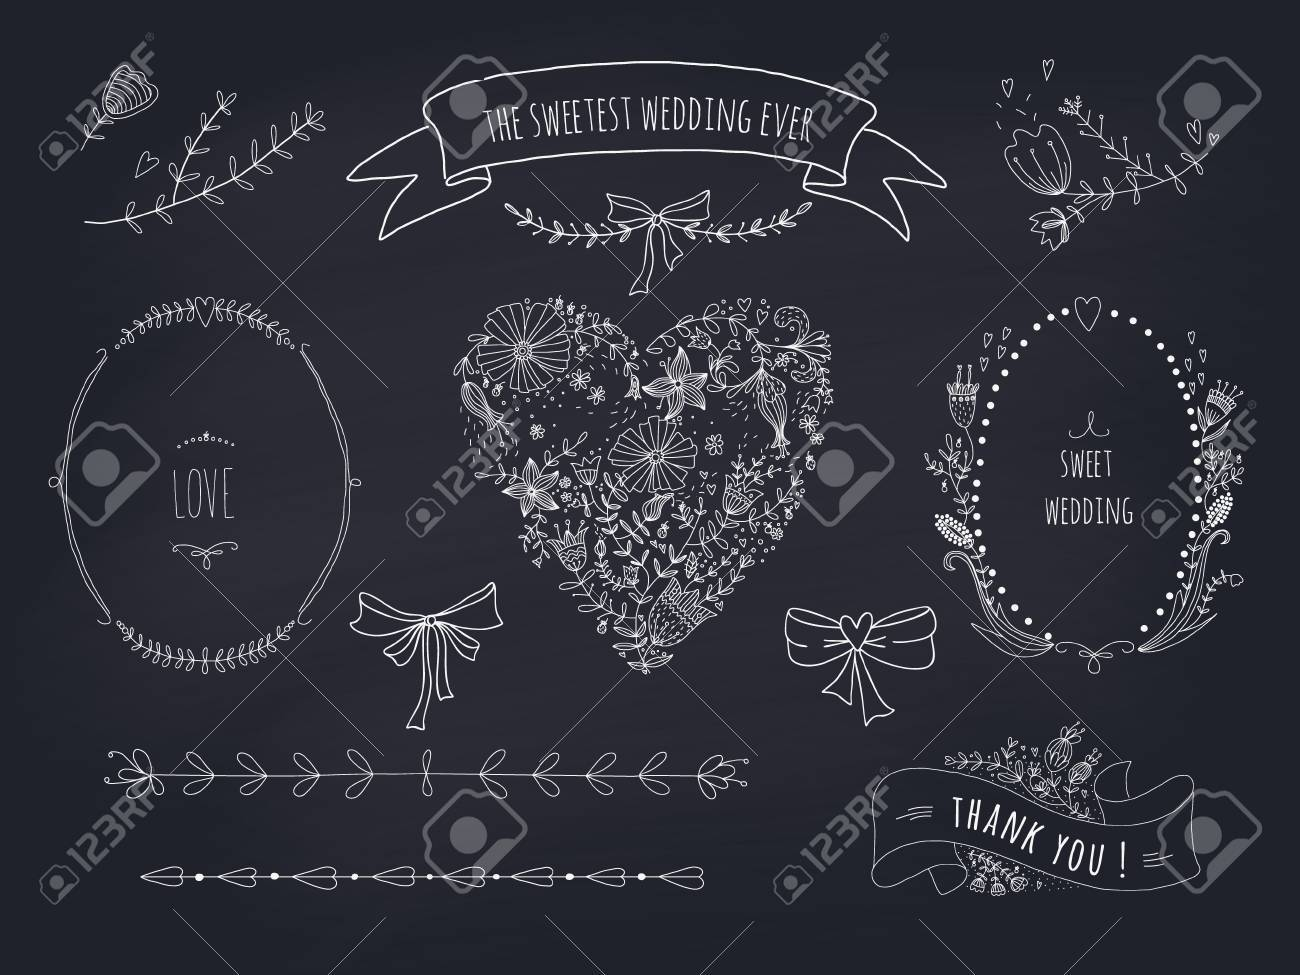 Of Wreaths Hand Drawn Set Of Wreaths Ribbons Heart And Labels On Blackboard